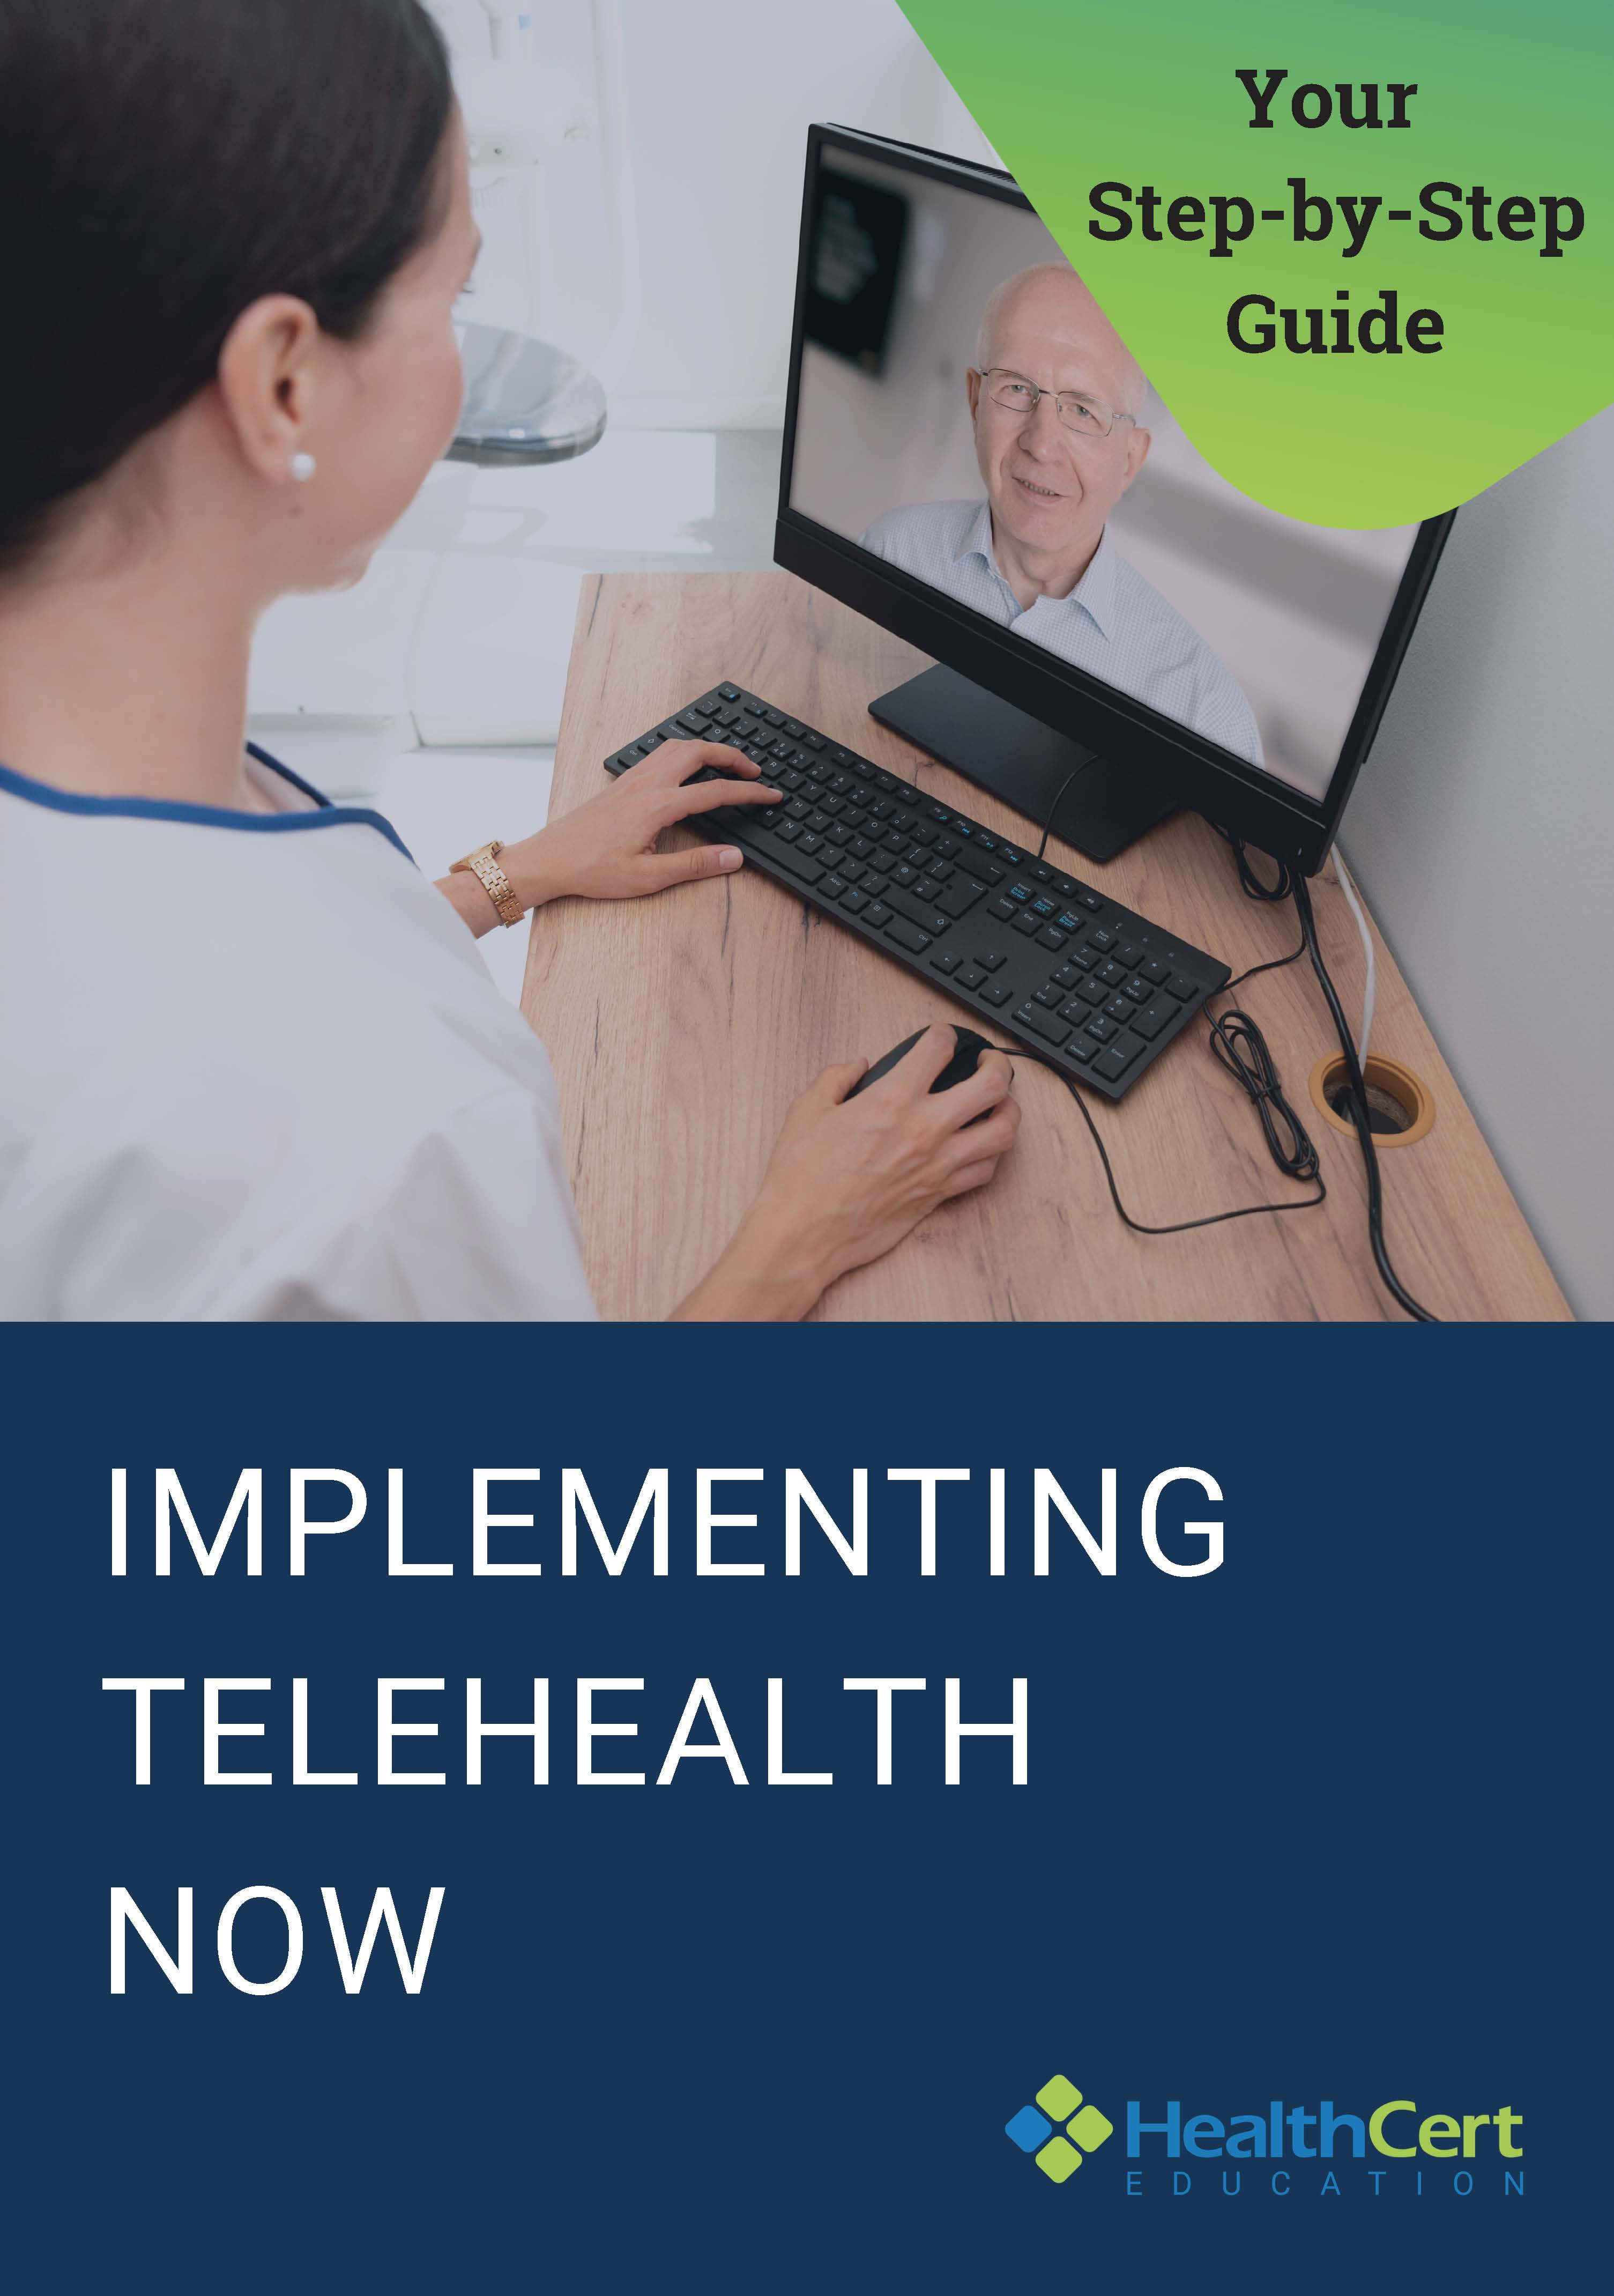 Implemting Telehealth Now